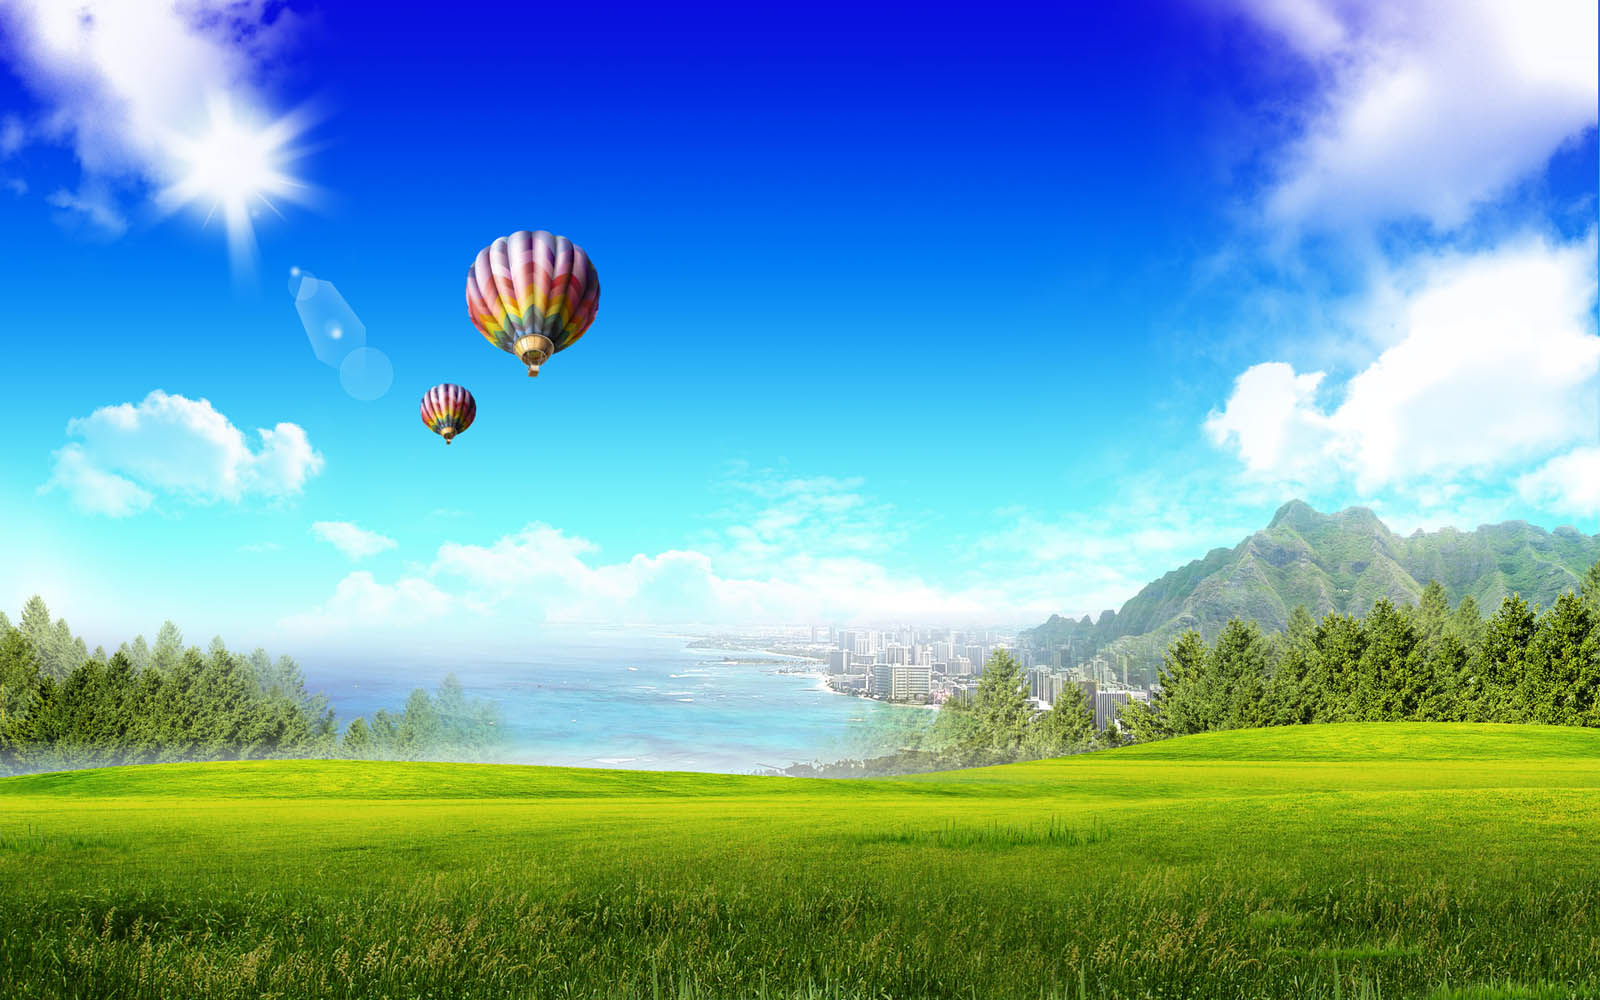 balloons wallpapers - photo #27